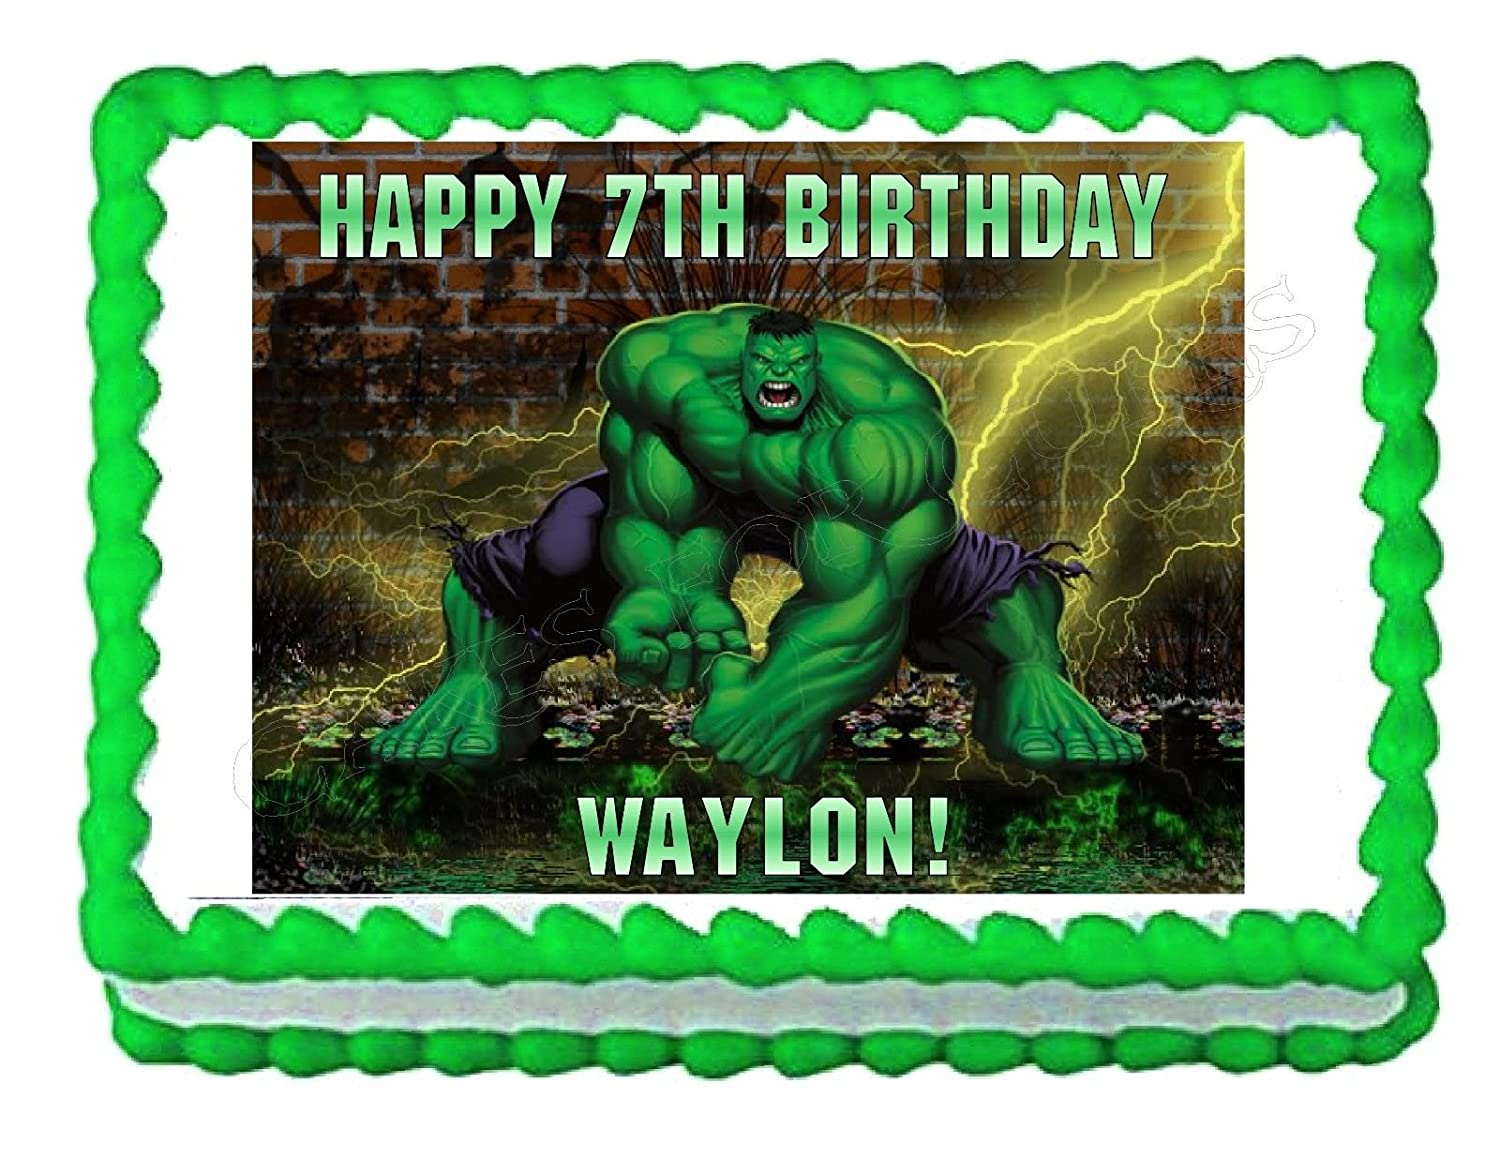 Amazoncom INCREDIBLE HULK party decoration edible cake image